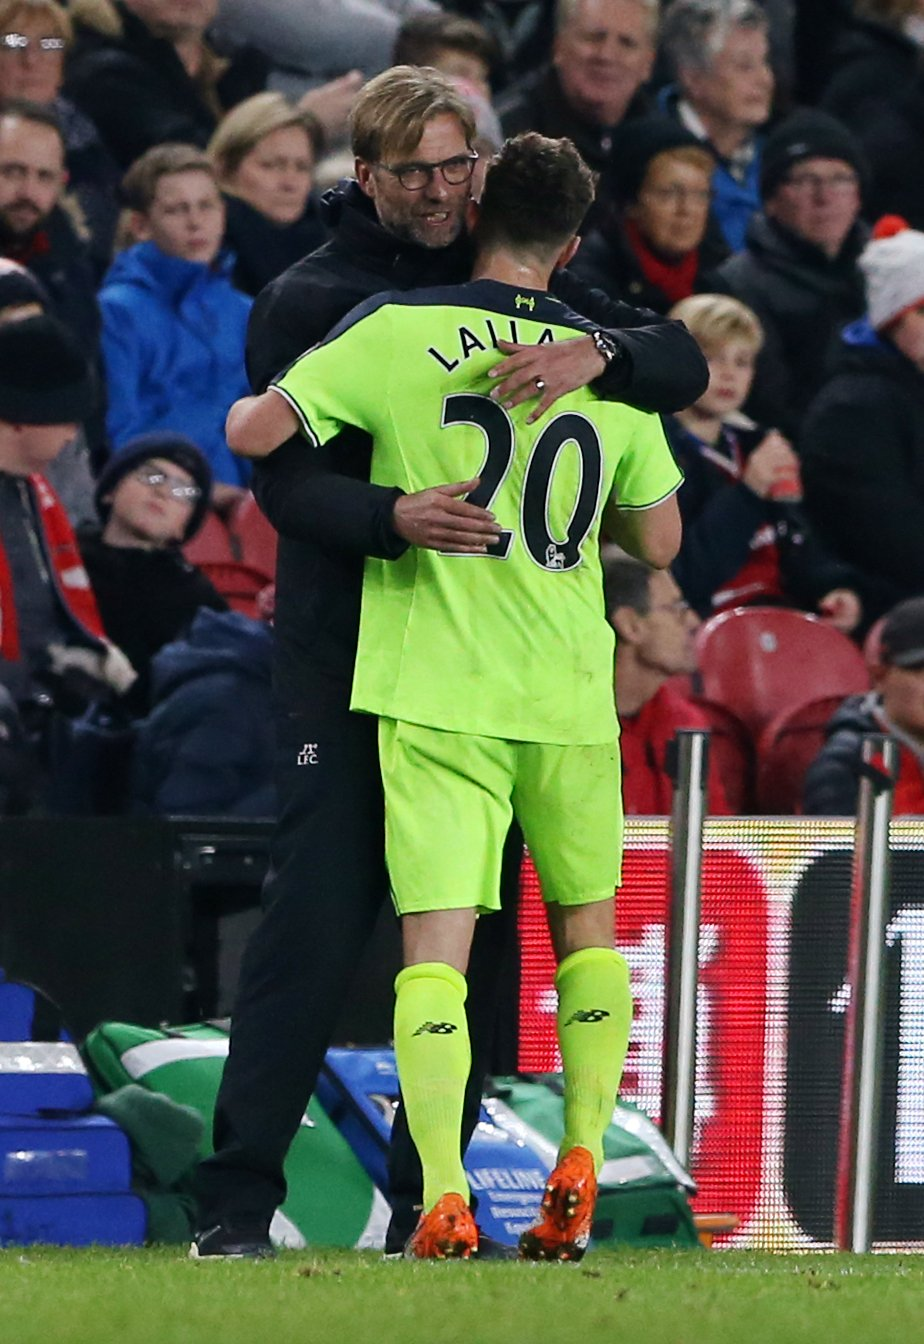 FULL-TIME Middlesbrough 0-3 Liverpool. An Adam Lallana double & Divock Origi strike send the Reds up to 2nd #MIDLIV https://t.co/NilvzhAGy0